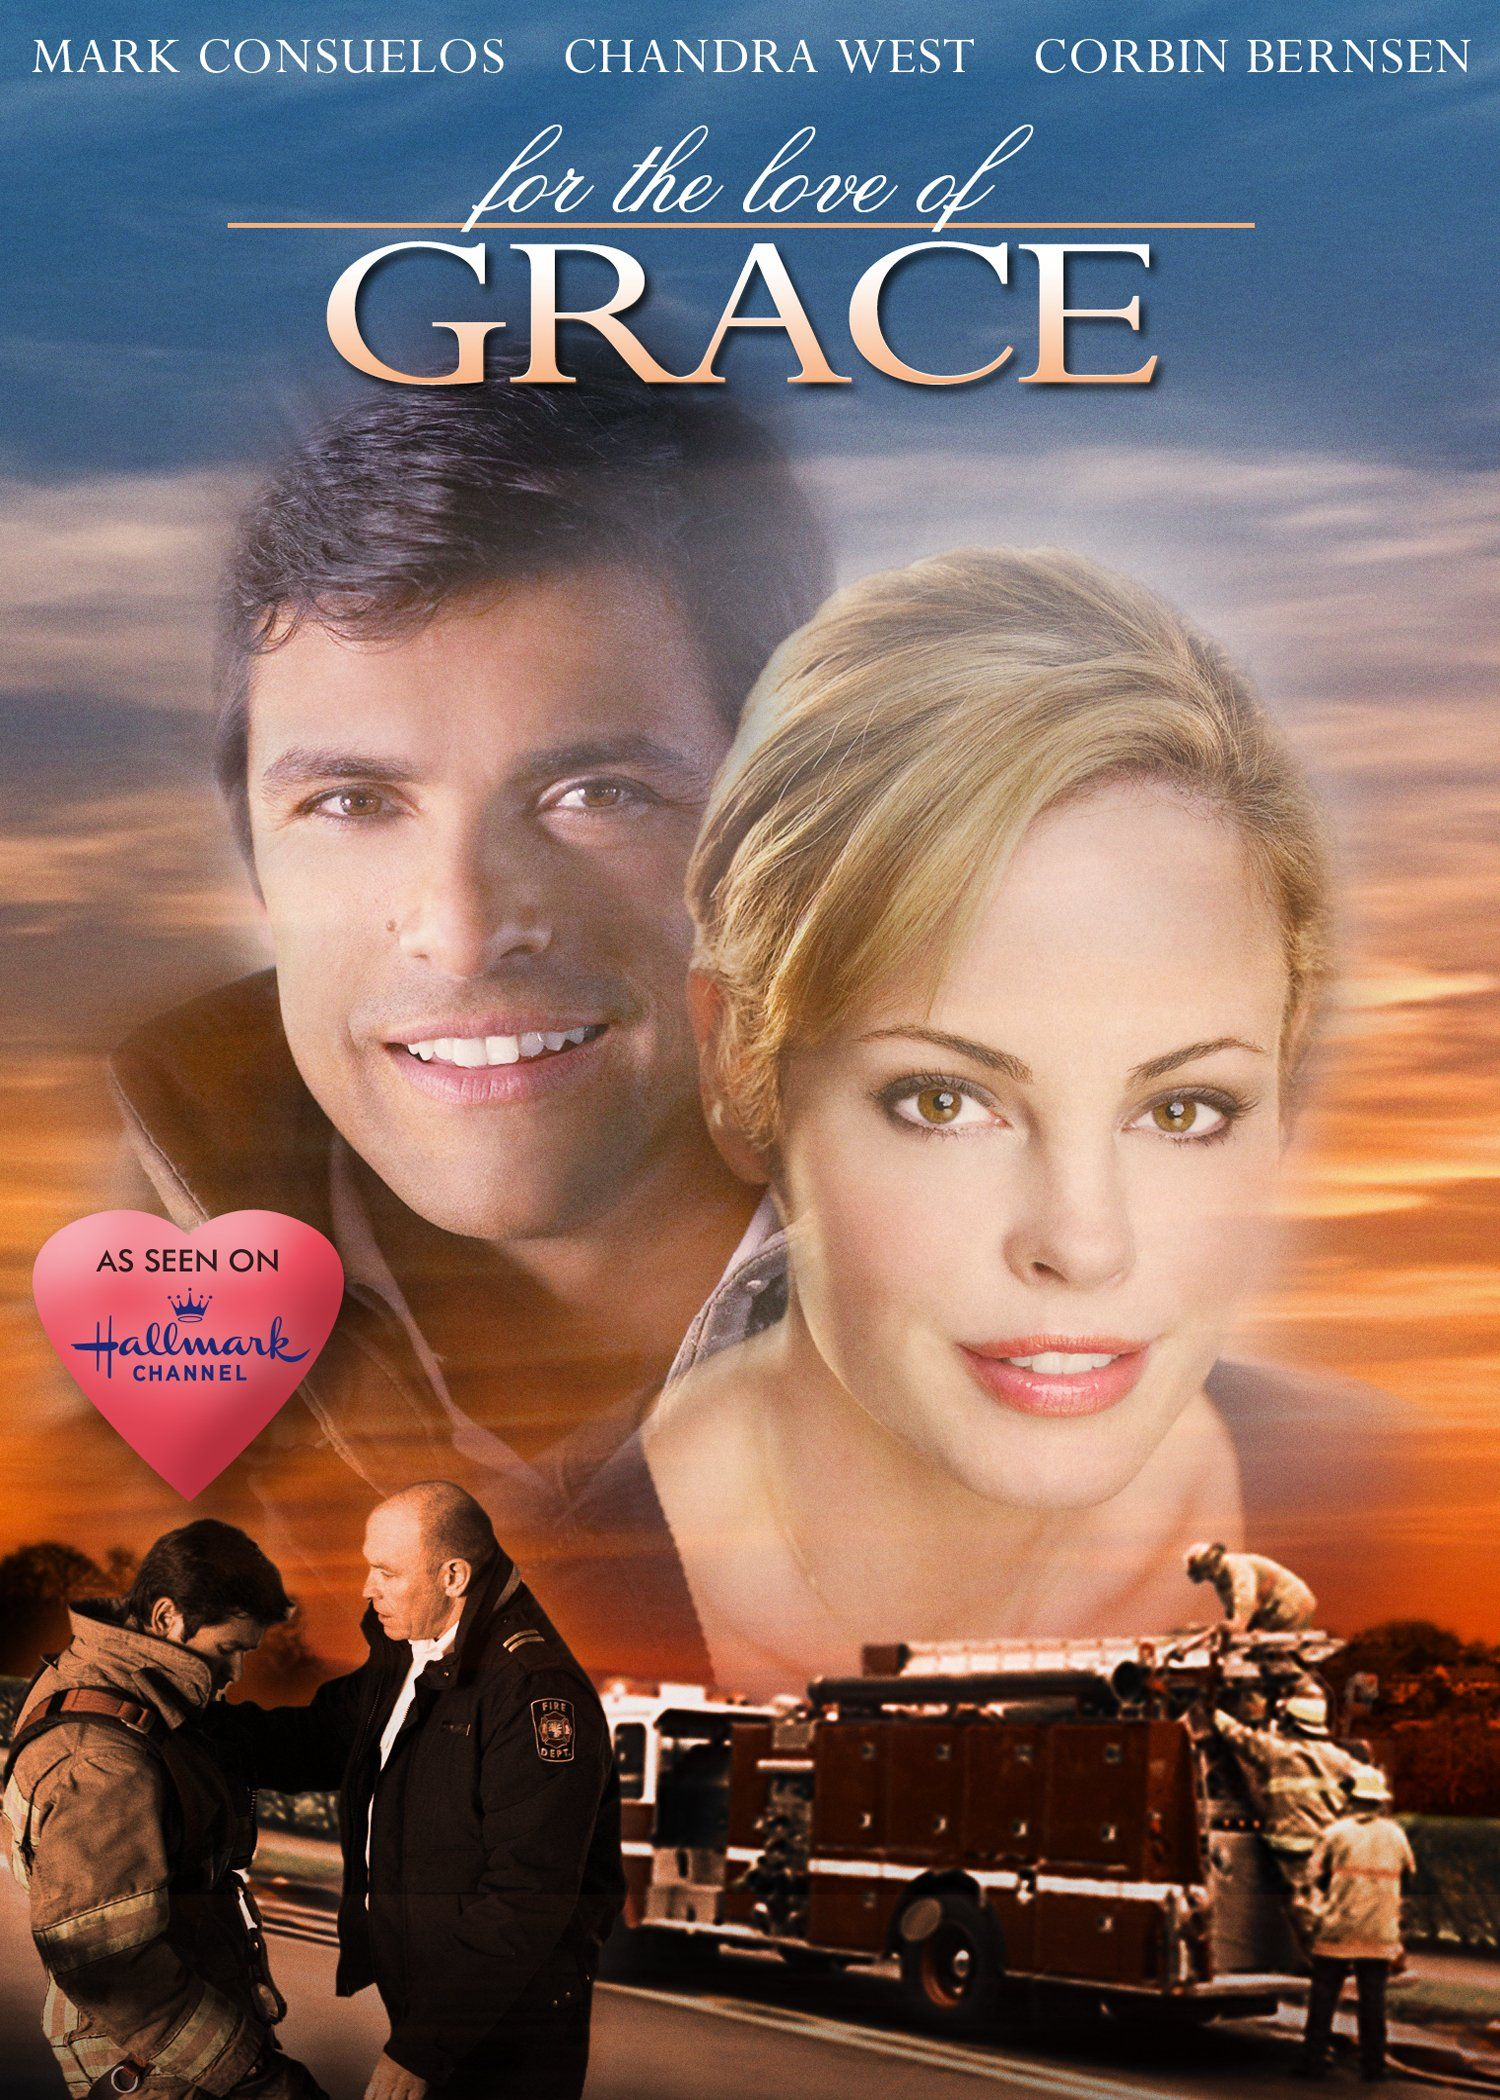 For the love of grace i love this movie its one of my